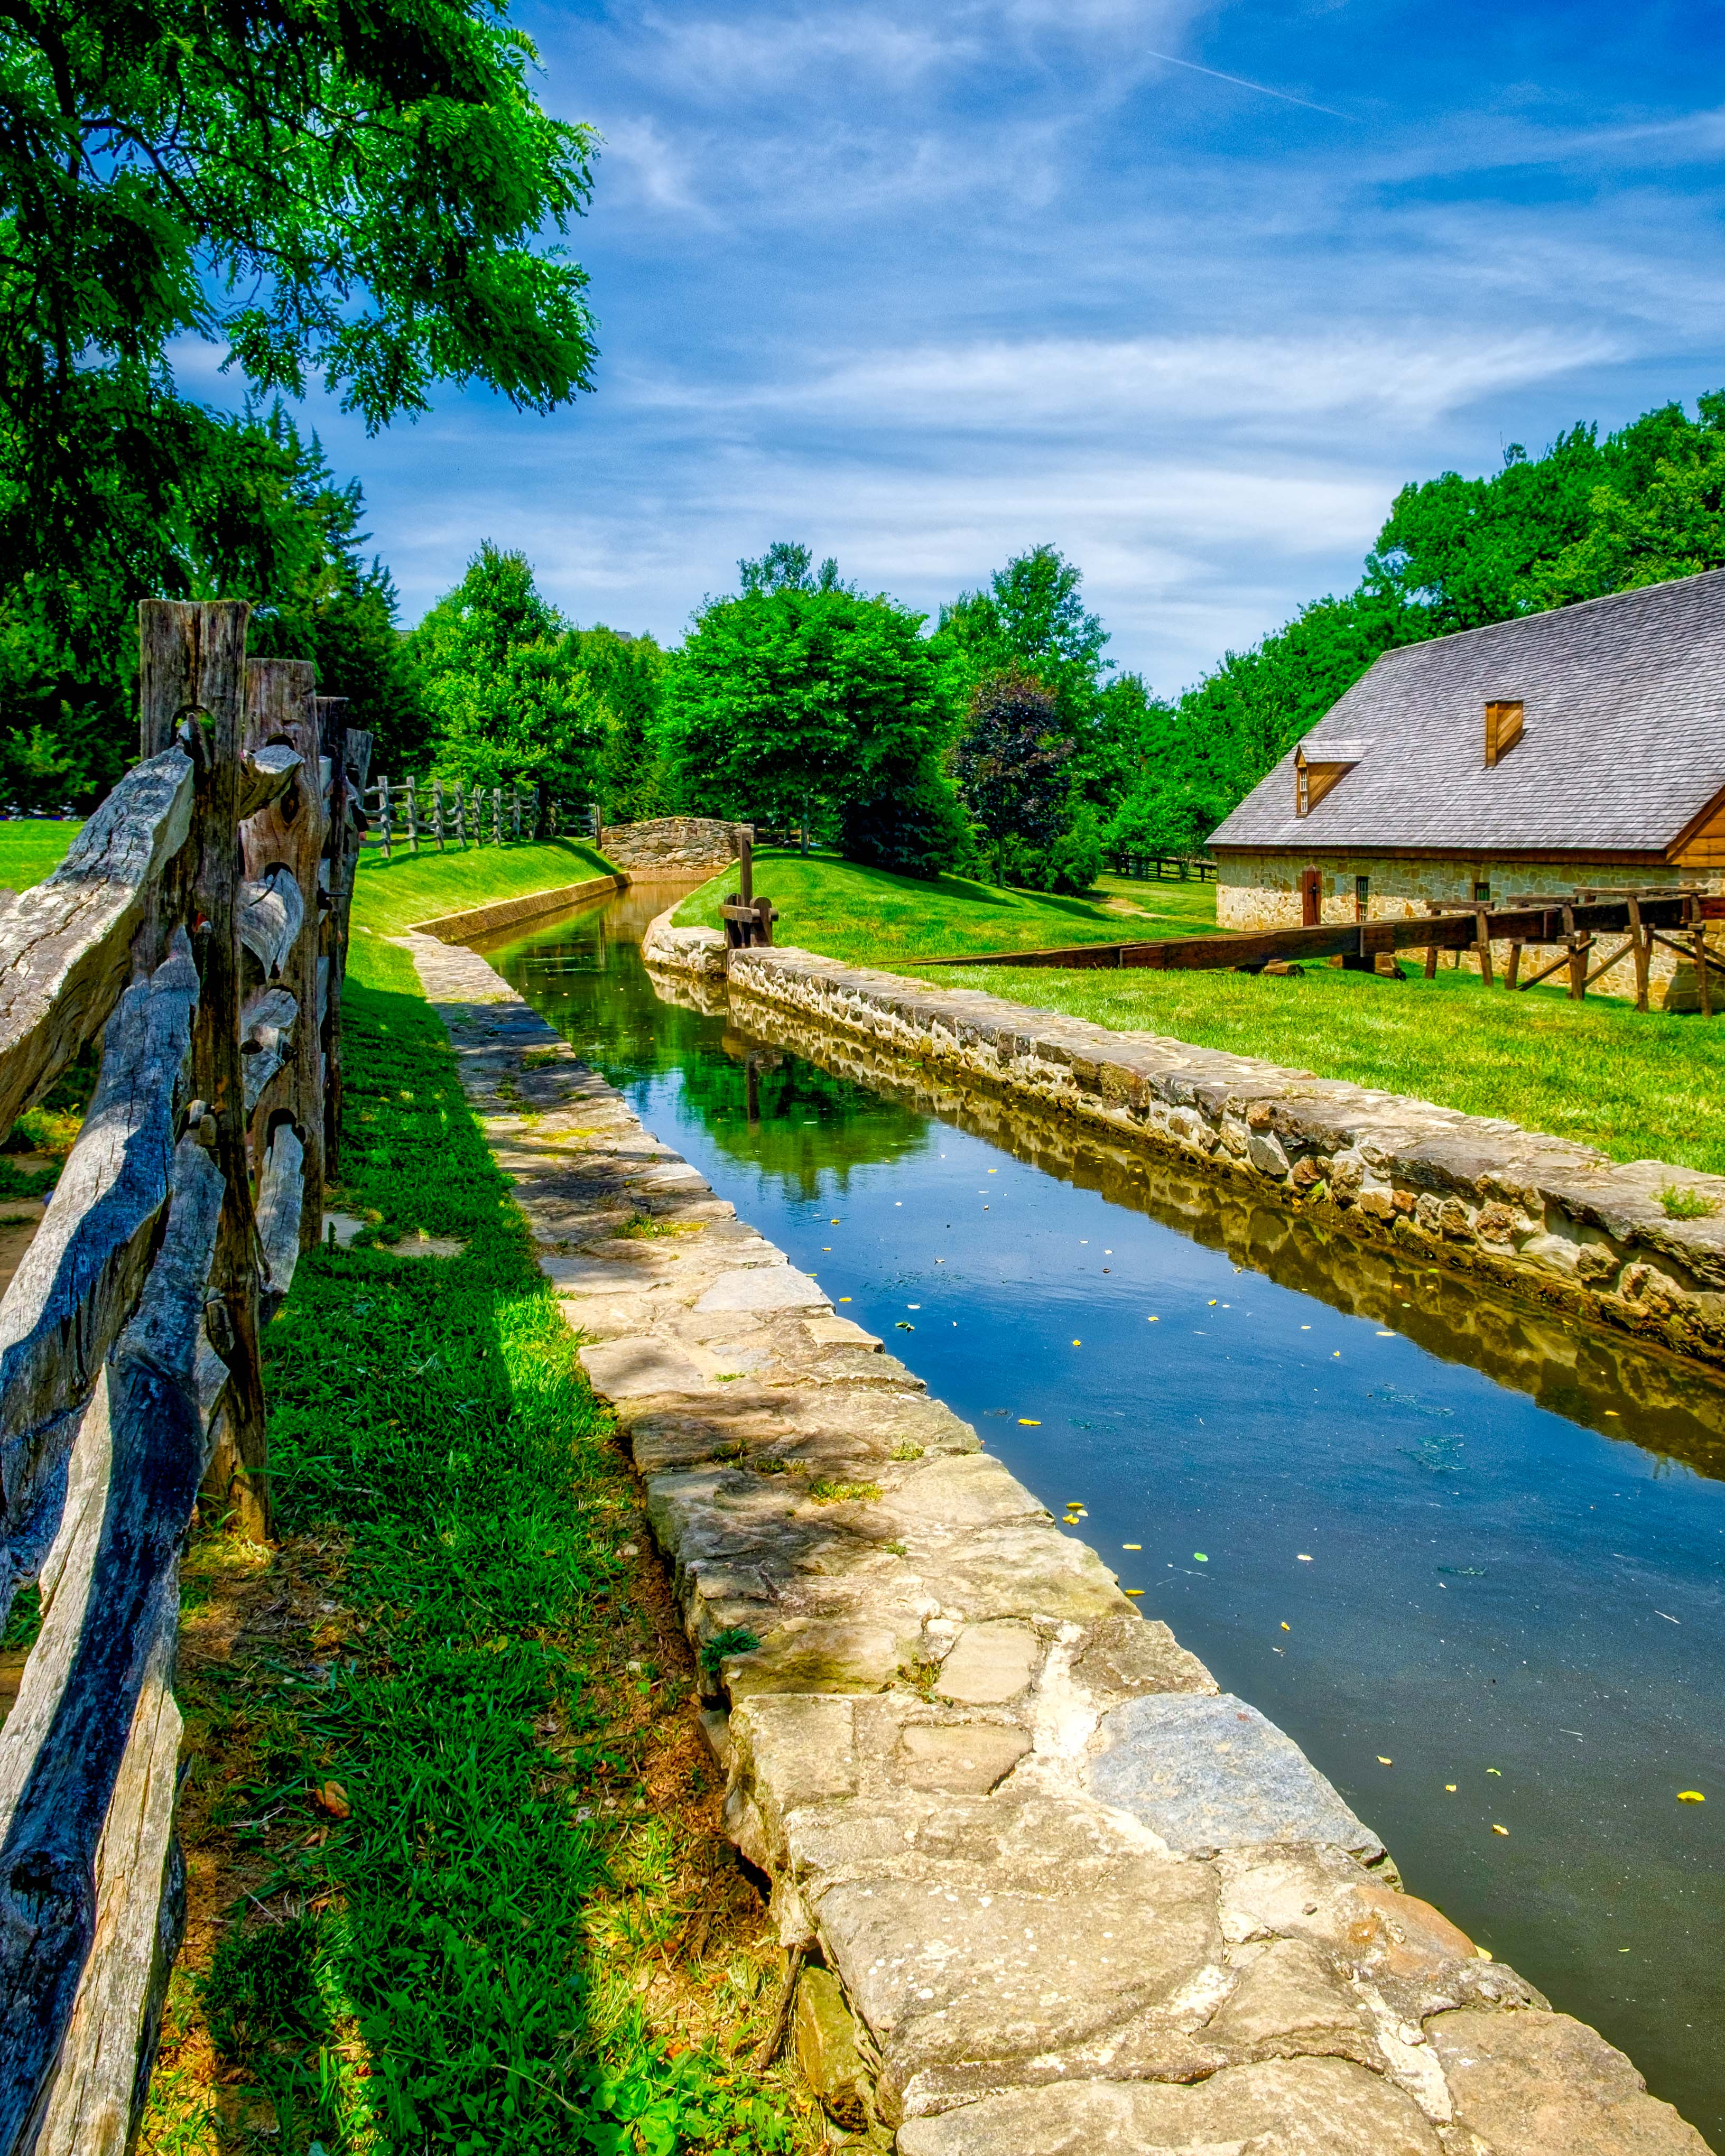 Mill stream and distillery at the George Washington gristmill and distillery near Mount Vernon.